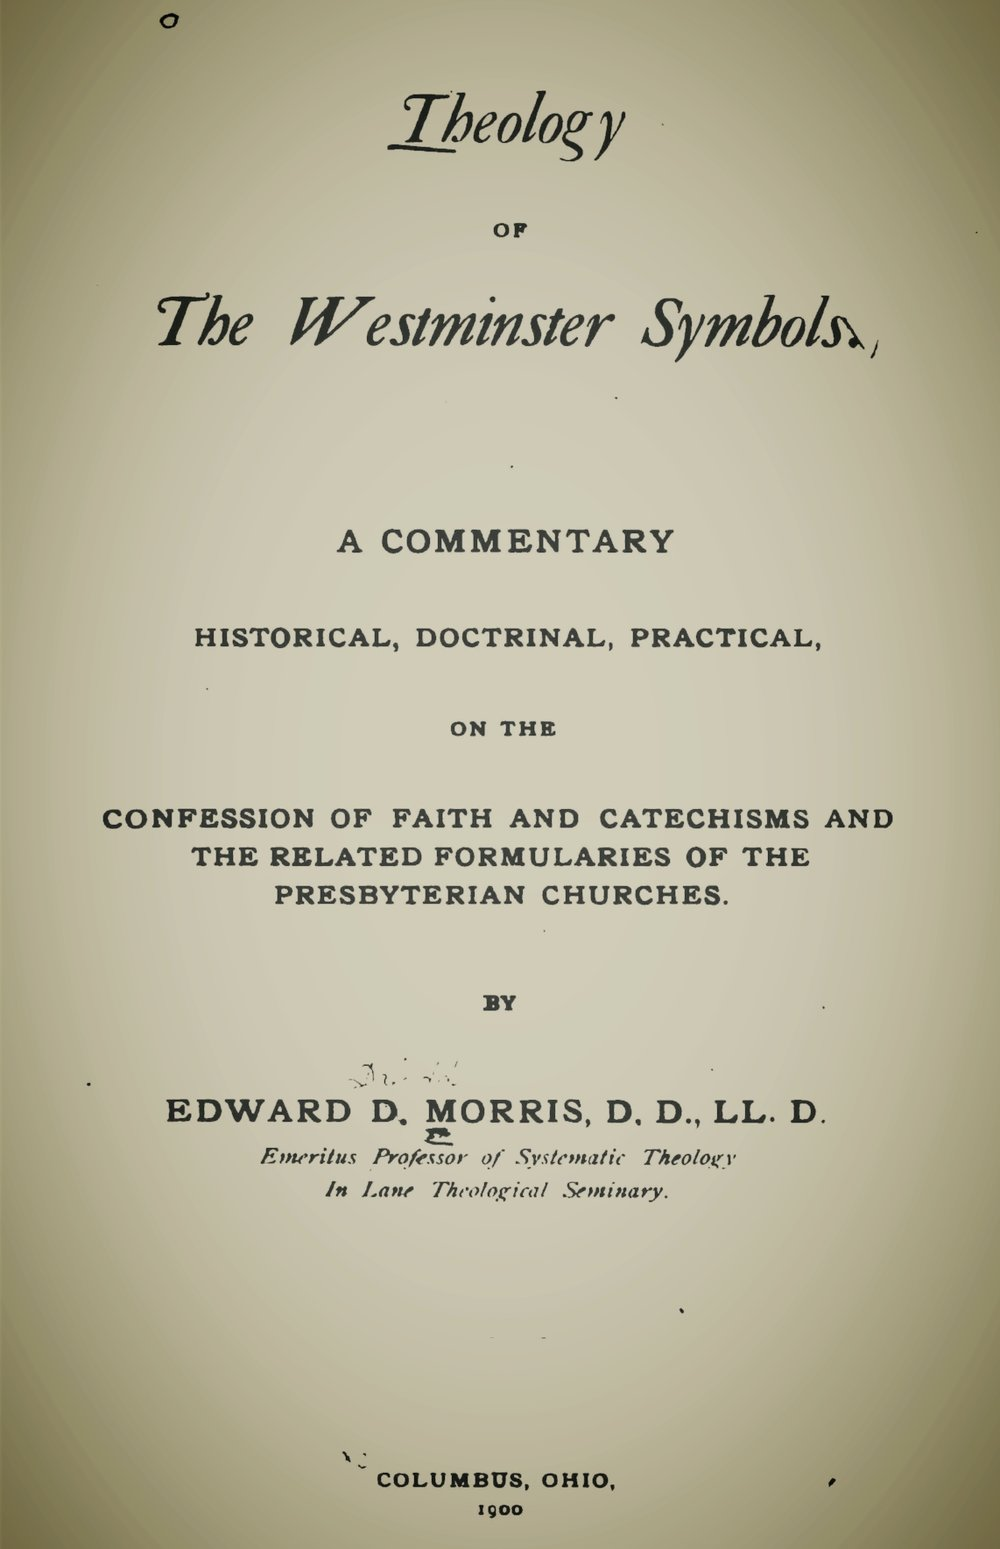 Morris, Edward Dafydd, Theology of the Westminster Symbols Title Page.jpg